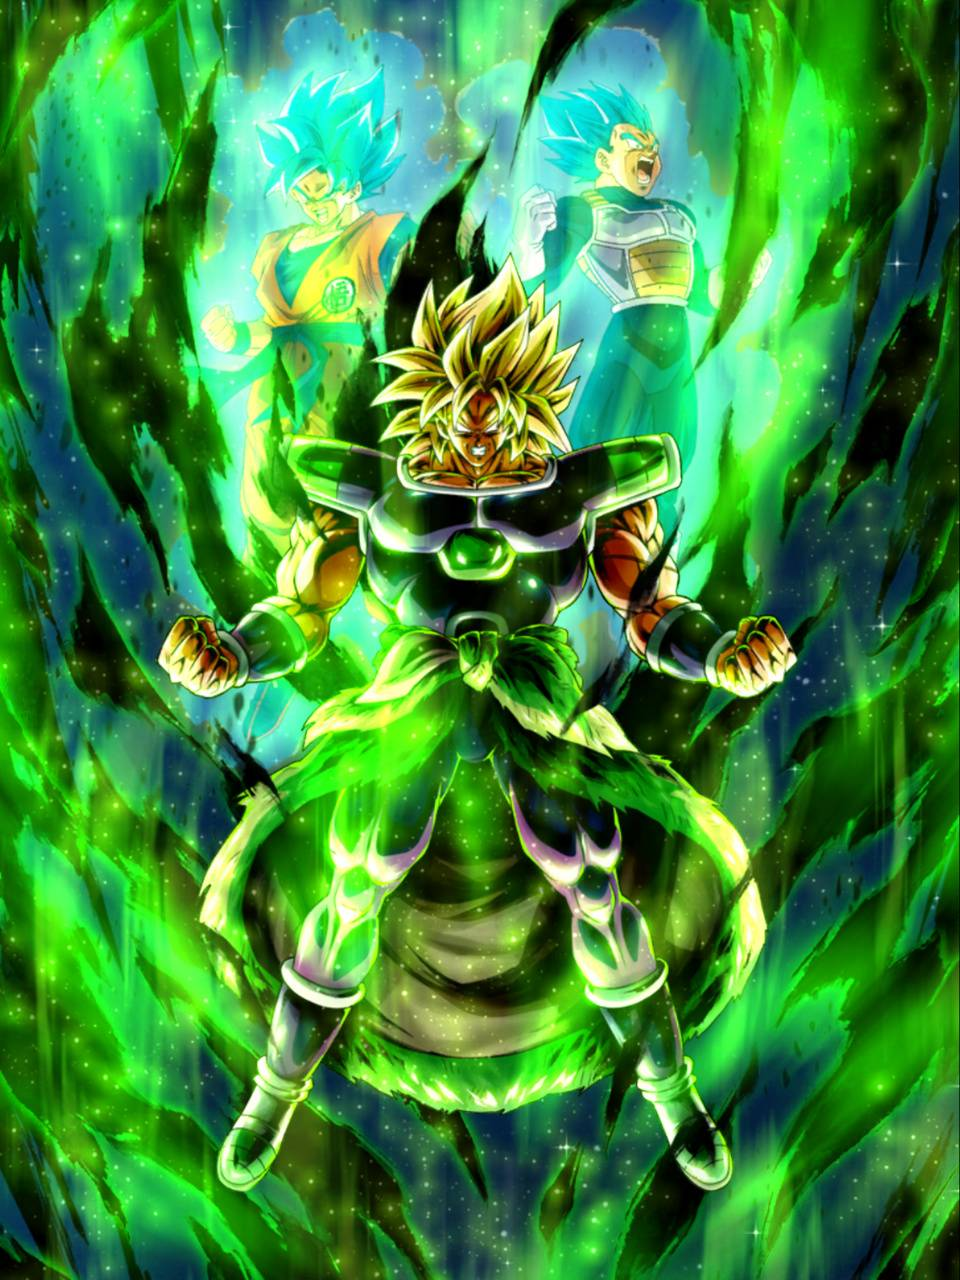 Broly Wallpaper Wallpaper By Jmoonx92 8a Free On Zedge